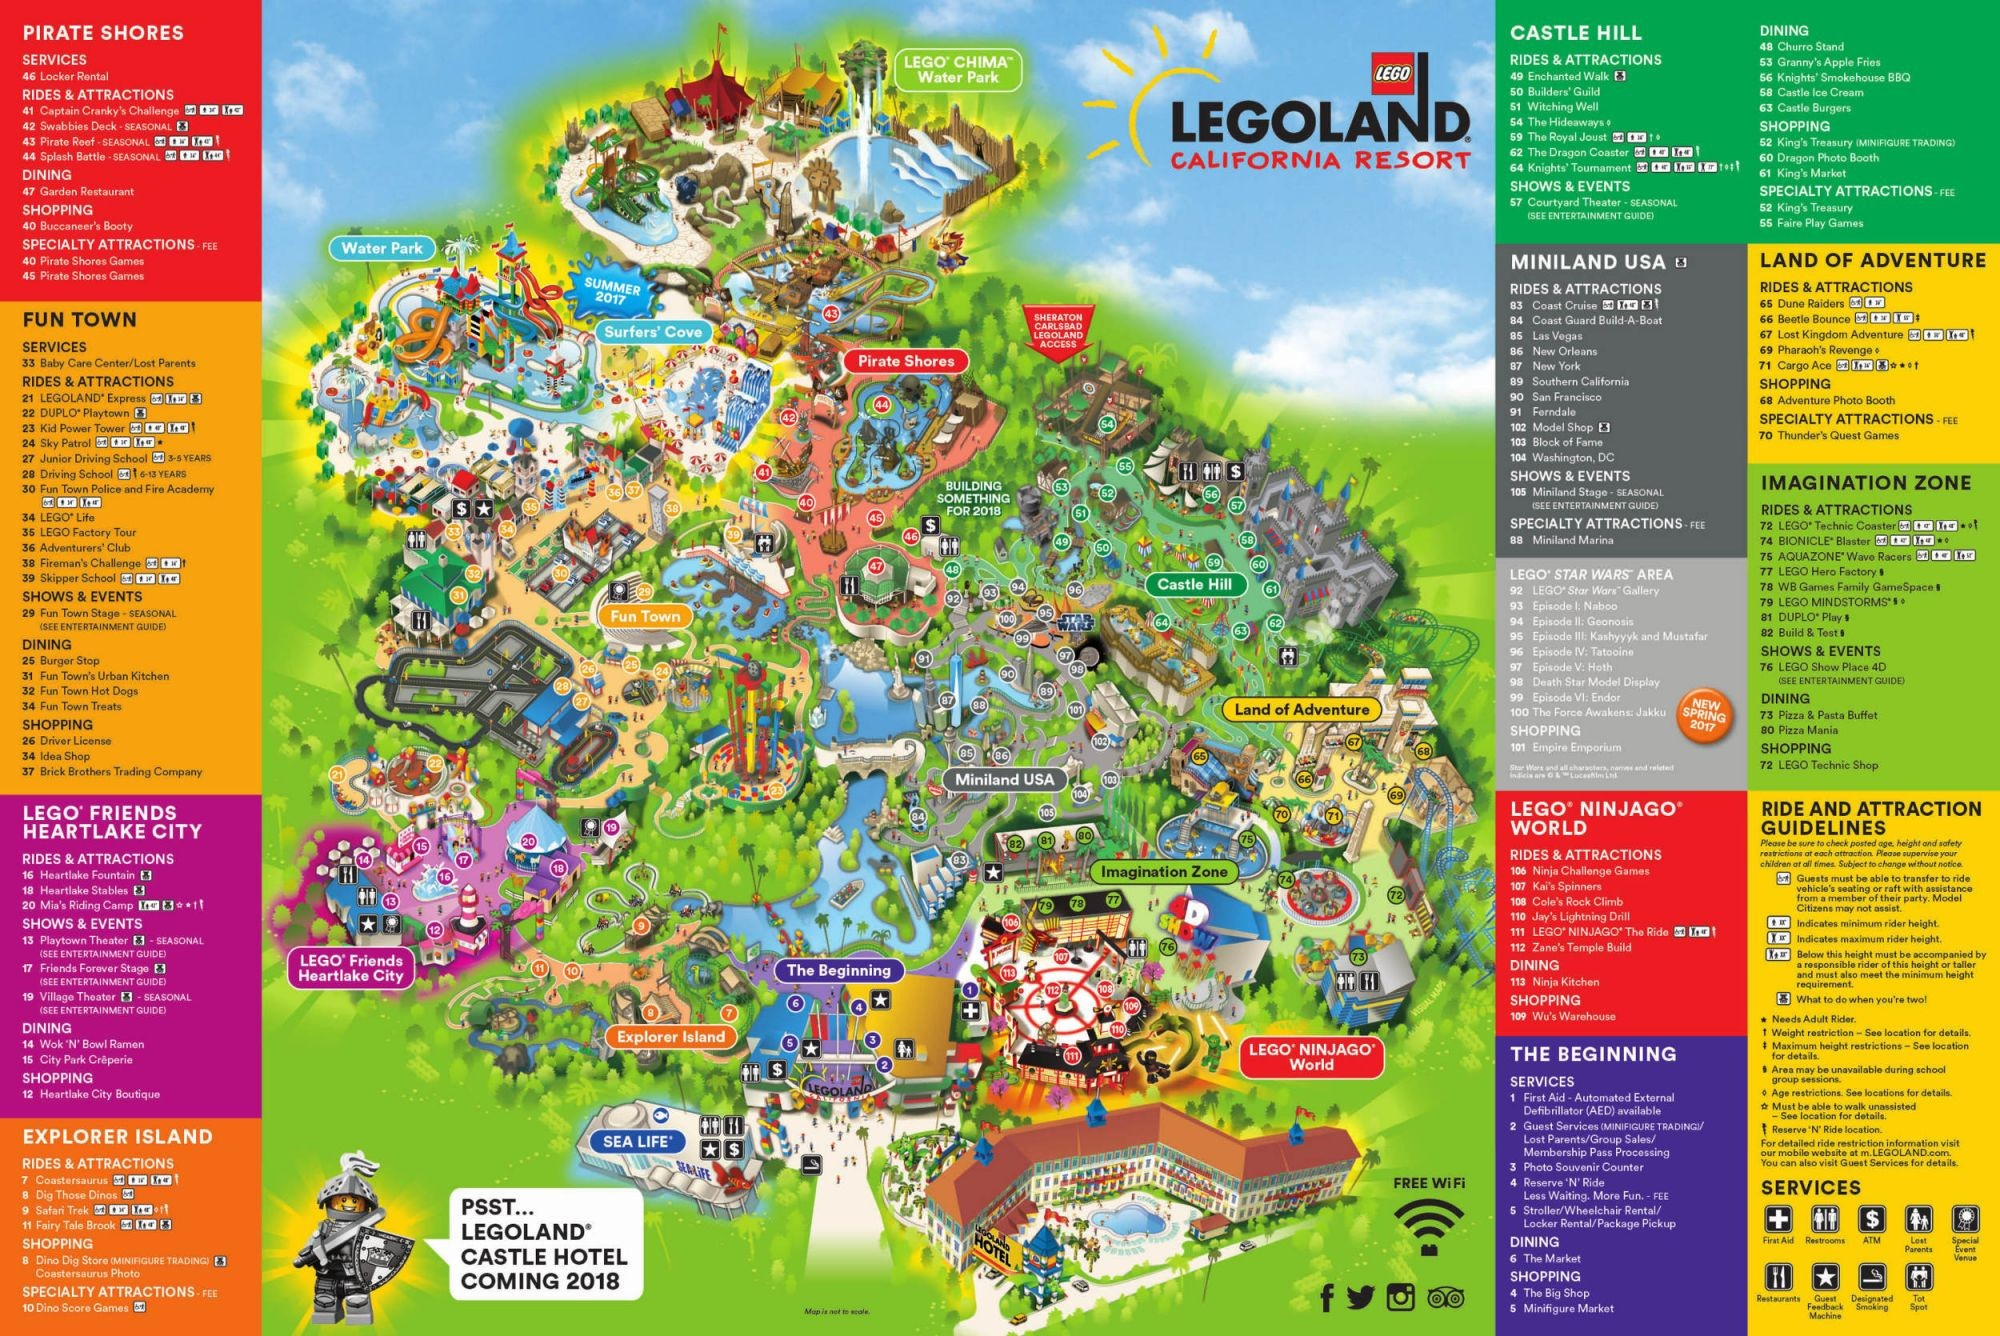 Amusement Parks Orlando Florida Archives - Clanrobot Best Of - Map Of Amusement Parks In Florida